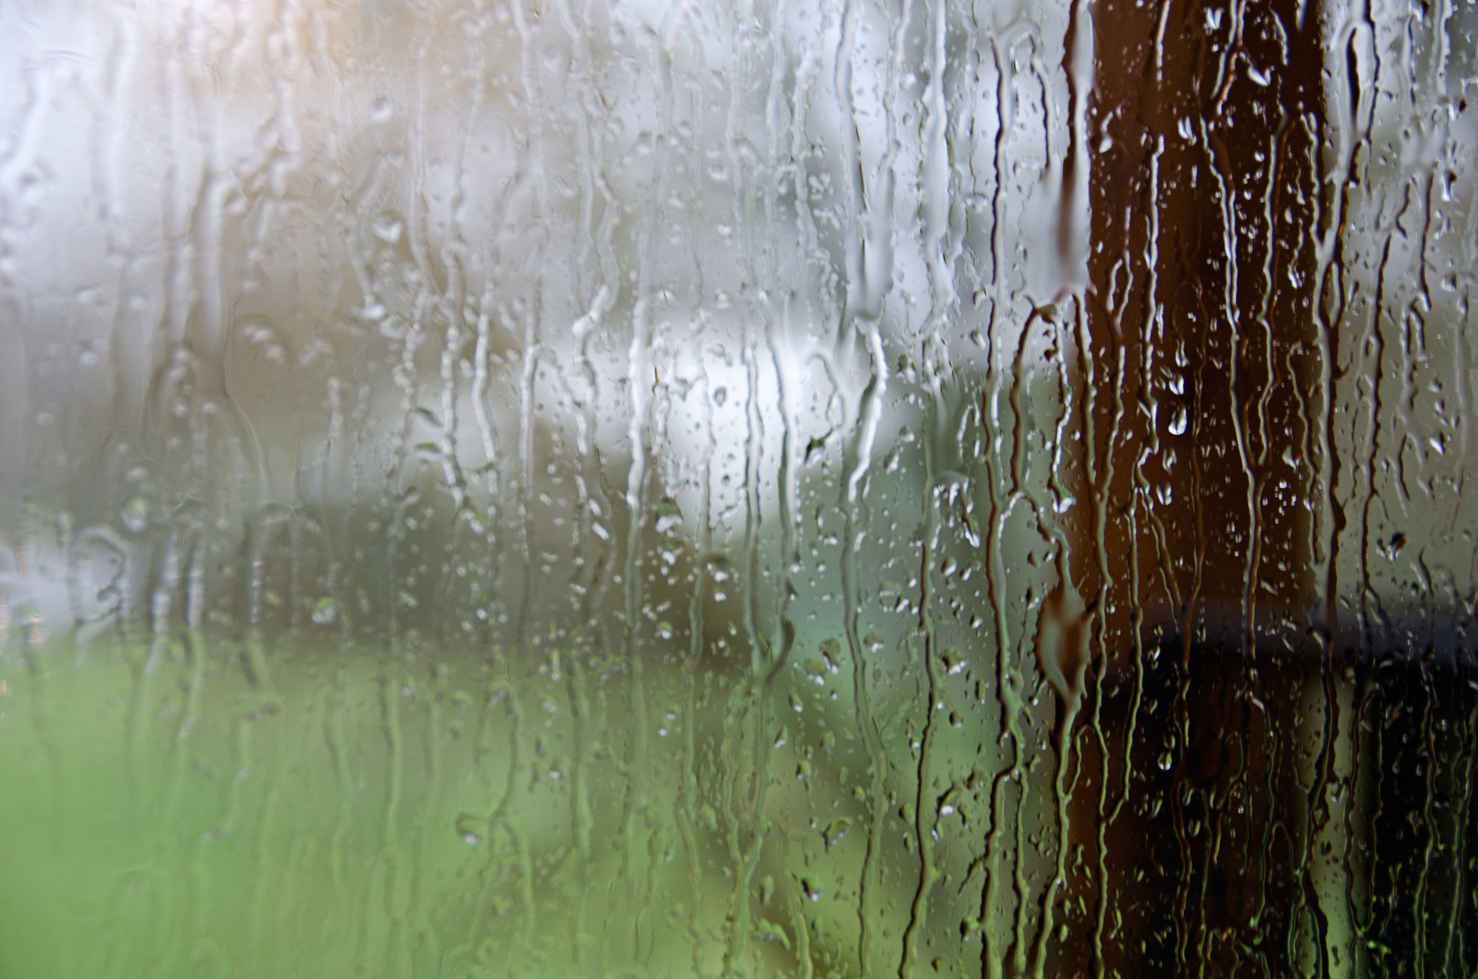 Rain drizzling against a window. Records of Life. A collection of photographs by Lauren Odell Usher Sharpton